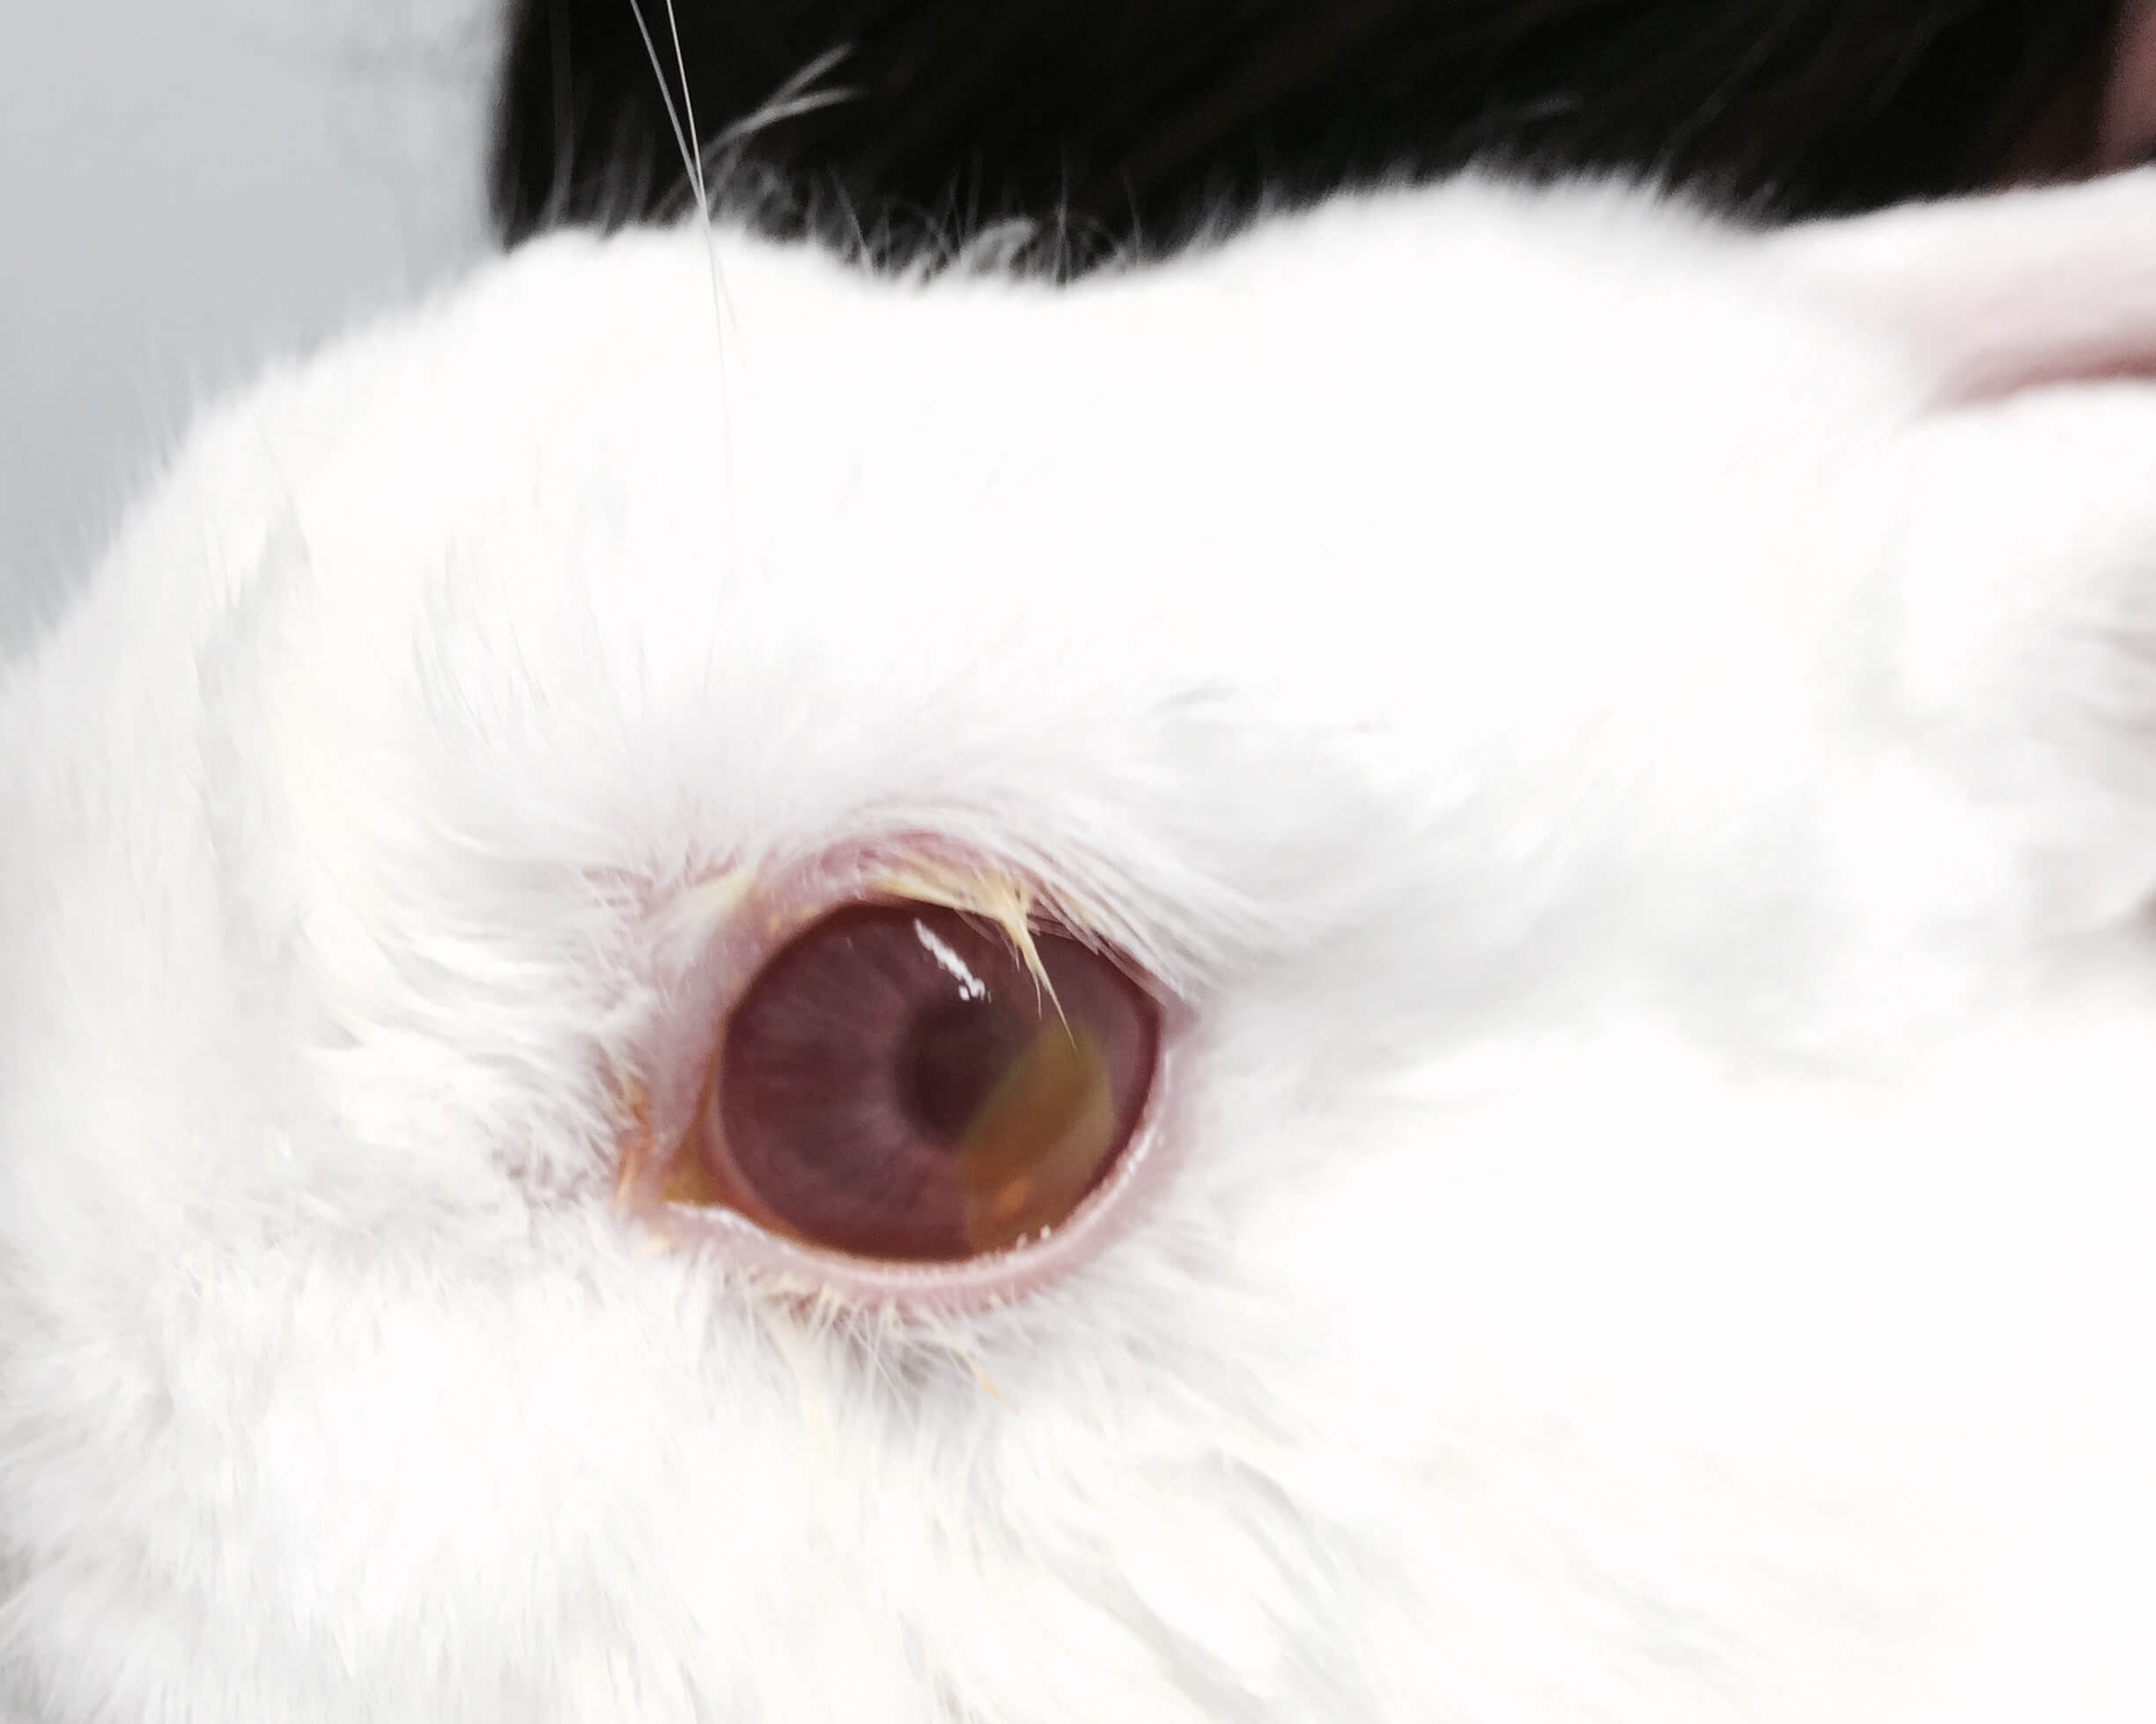 Rabbit With Uveitis